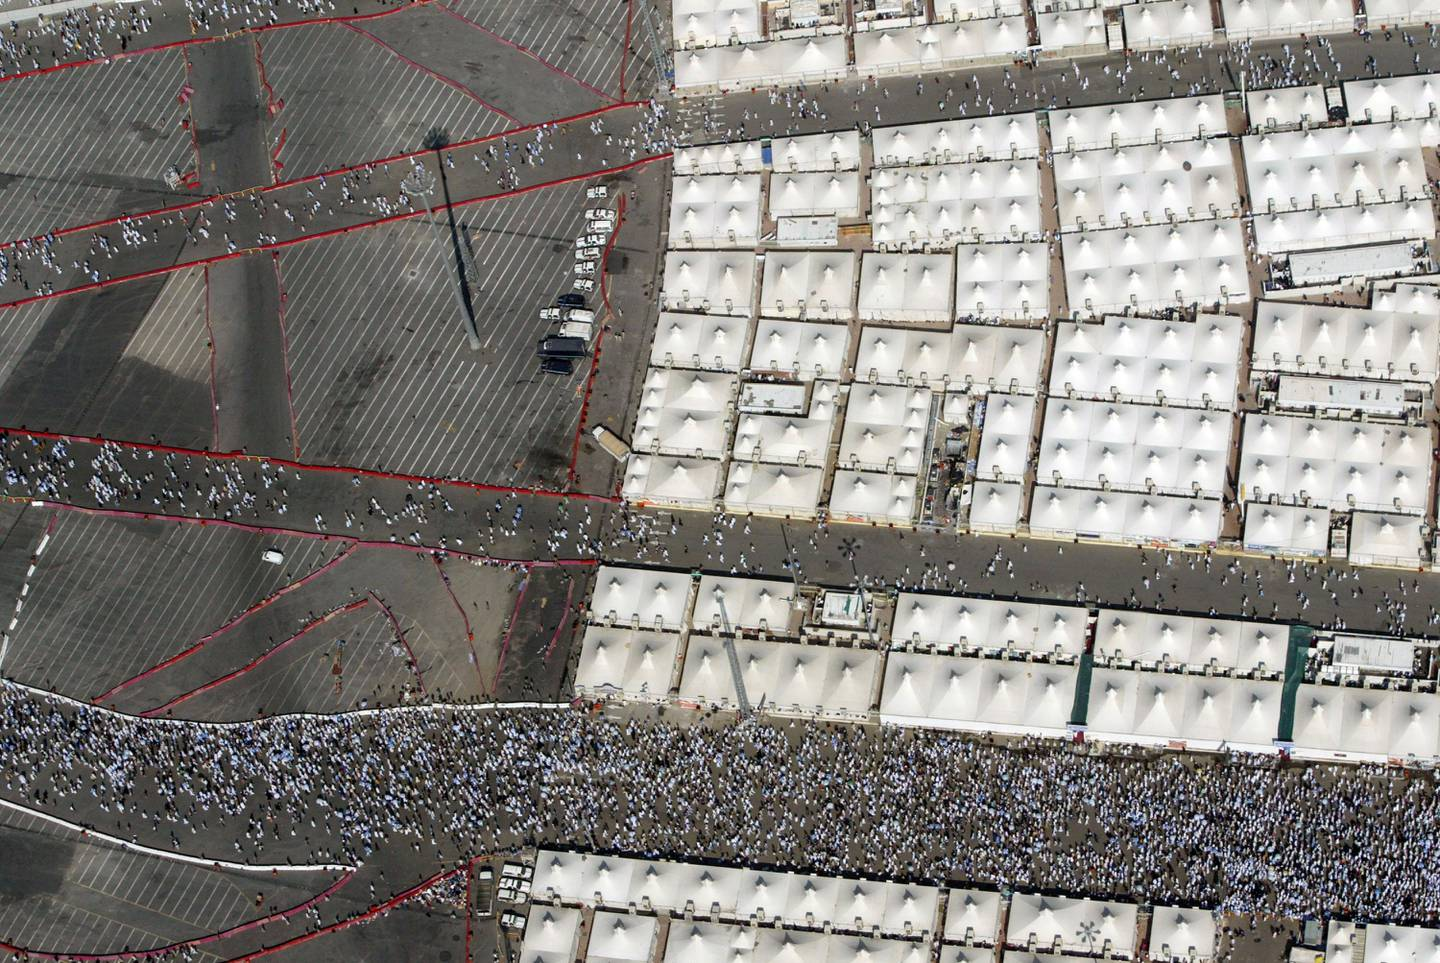 An aerial view of Mina shows pilgrims walking around the Jamarat to throw pebbles at a stone pillar representing the devil, near the tents, during the Hajj on December 09, 2008. (Salah Malkawi/ The National)